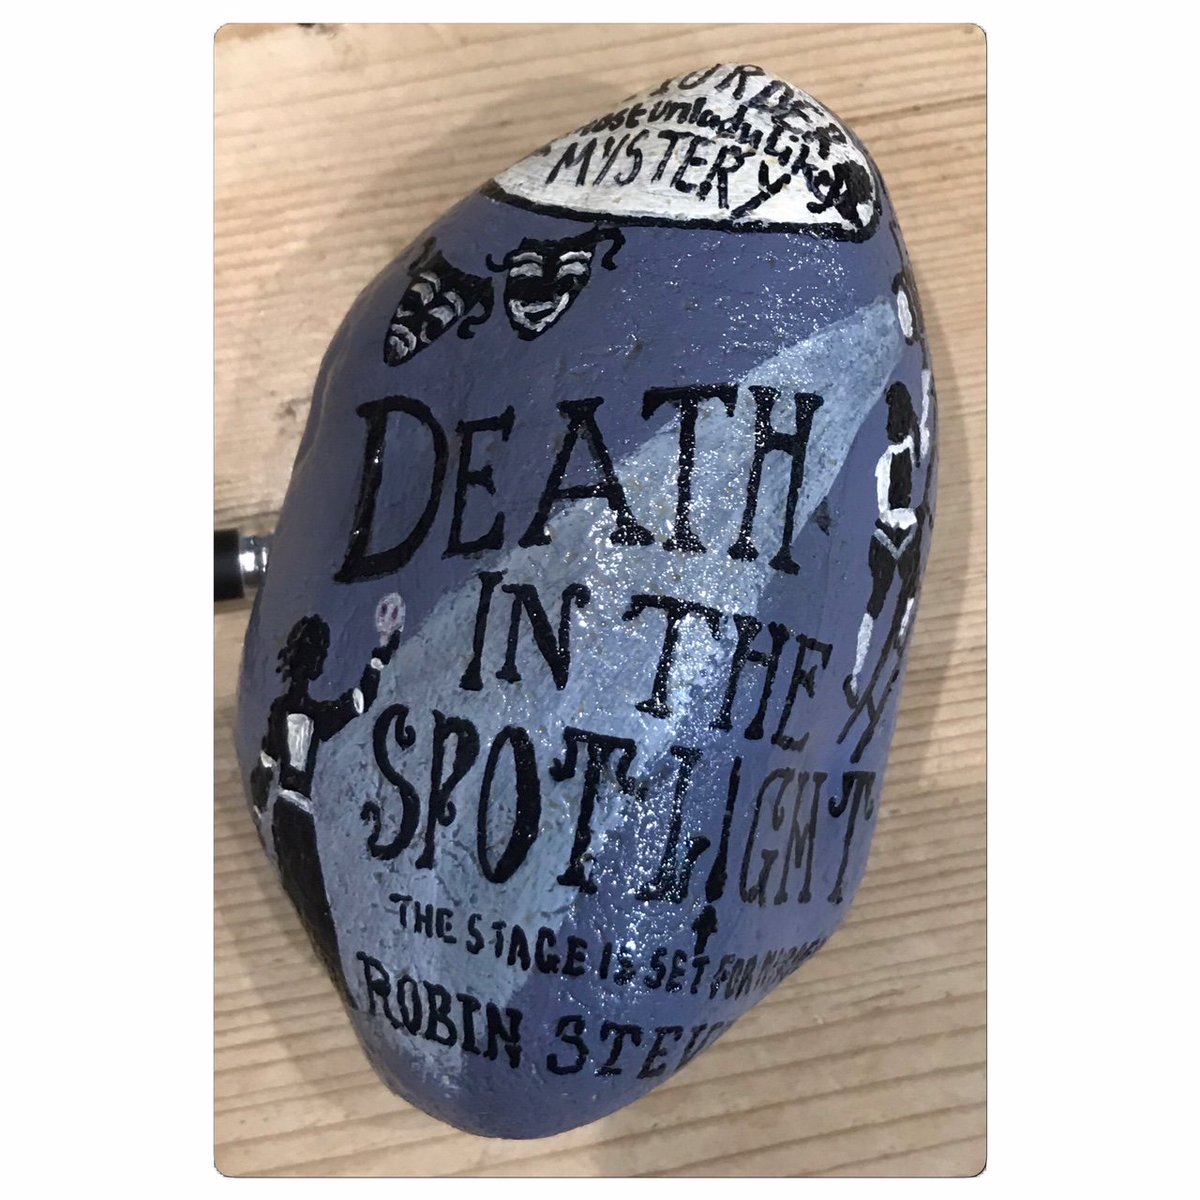 New painted rock book suggestion hidden in the library, Death in the Spotlight by @redbreastedbird @PuffinBooks  #findandrehide #booksrock #murdermostunladylike